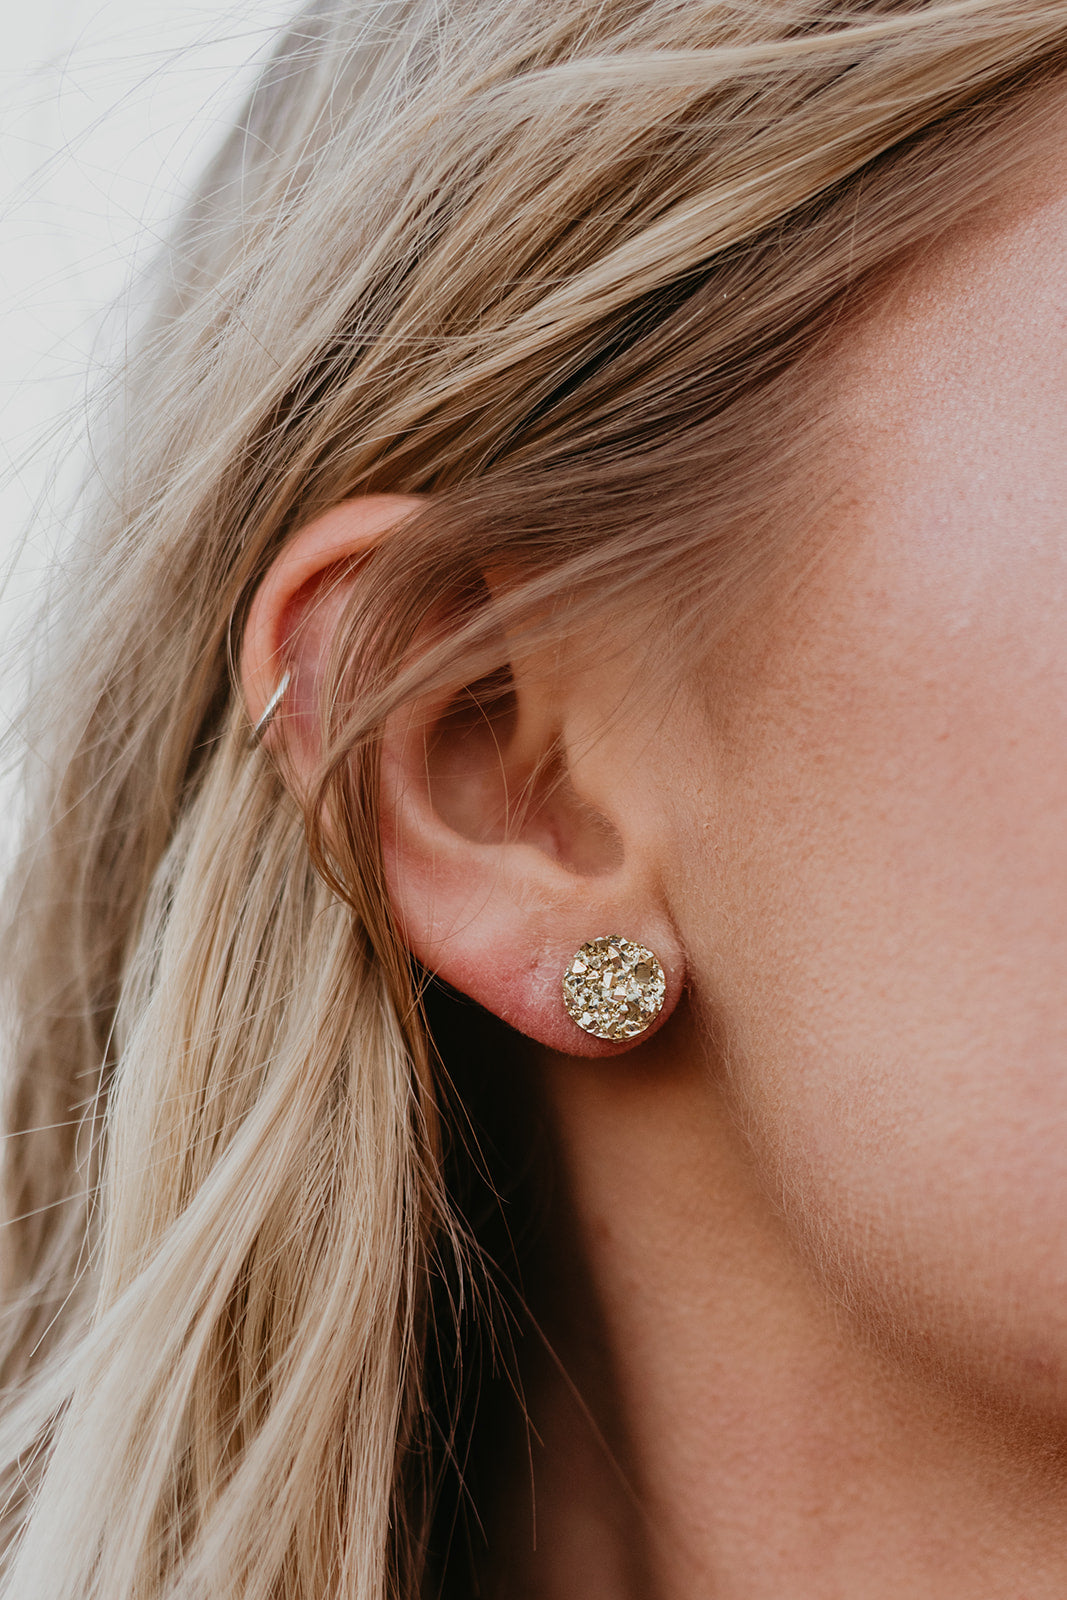 THE ROUND GOLD EARRINGS